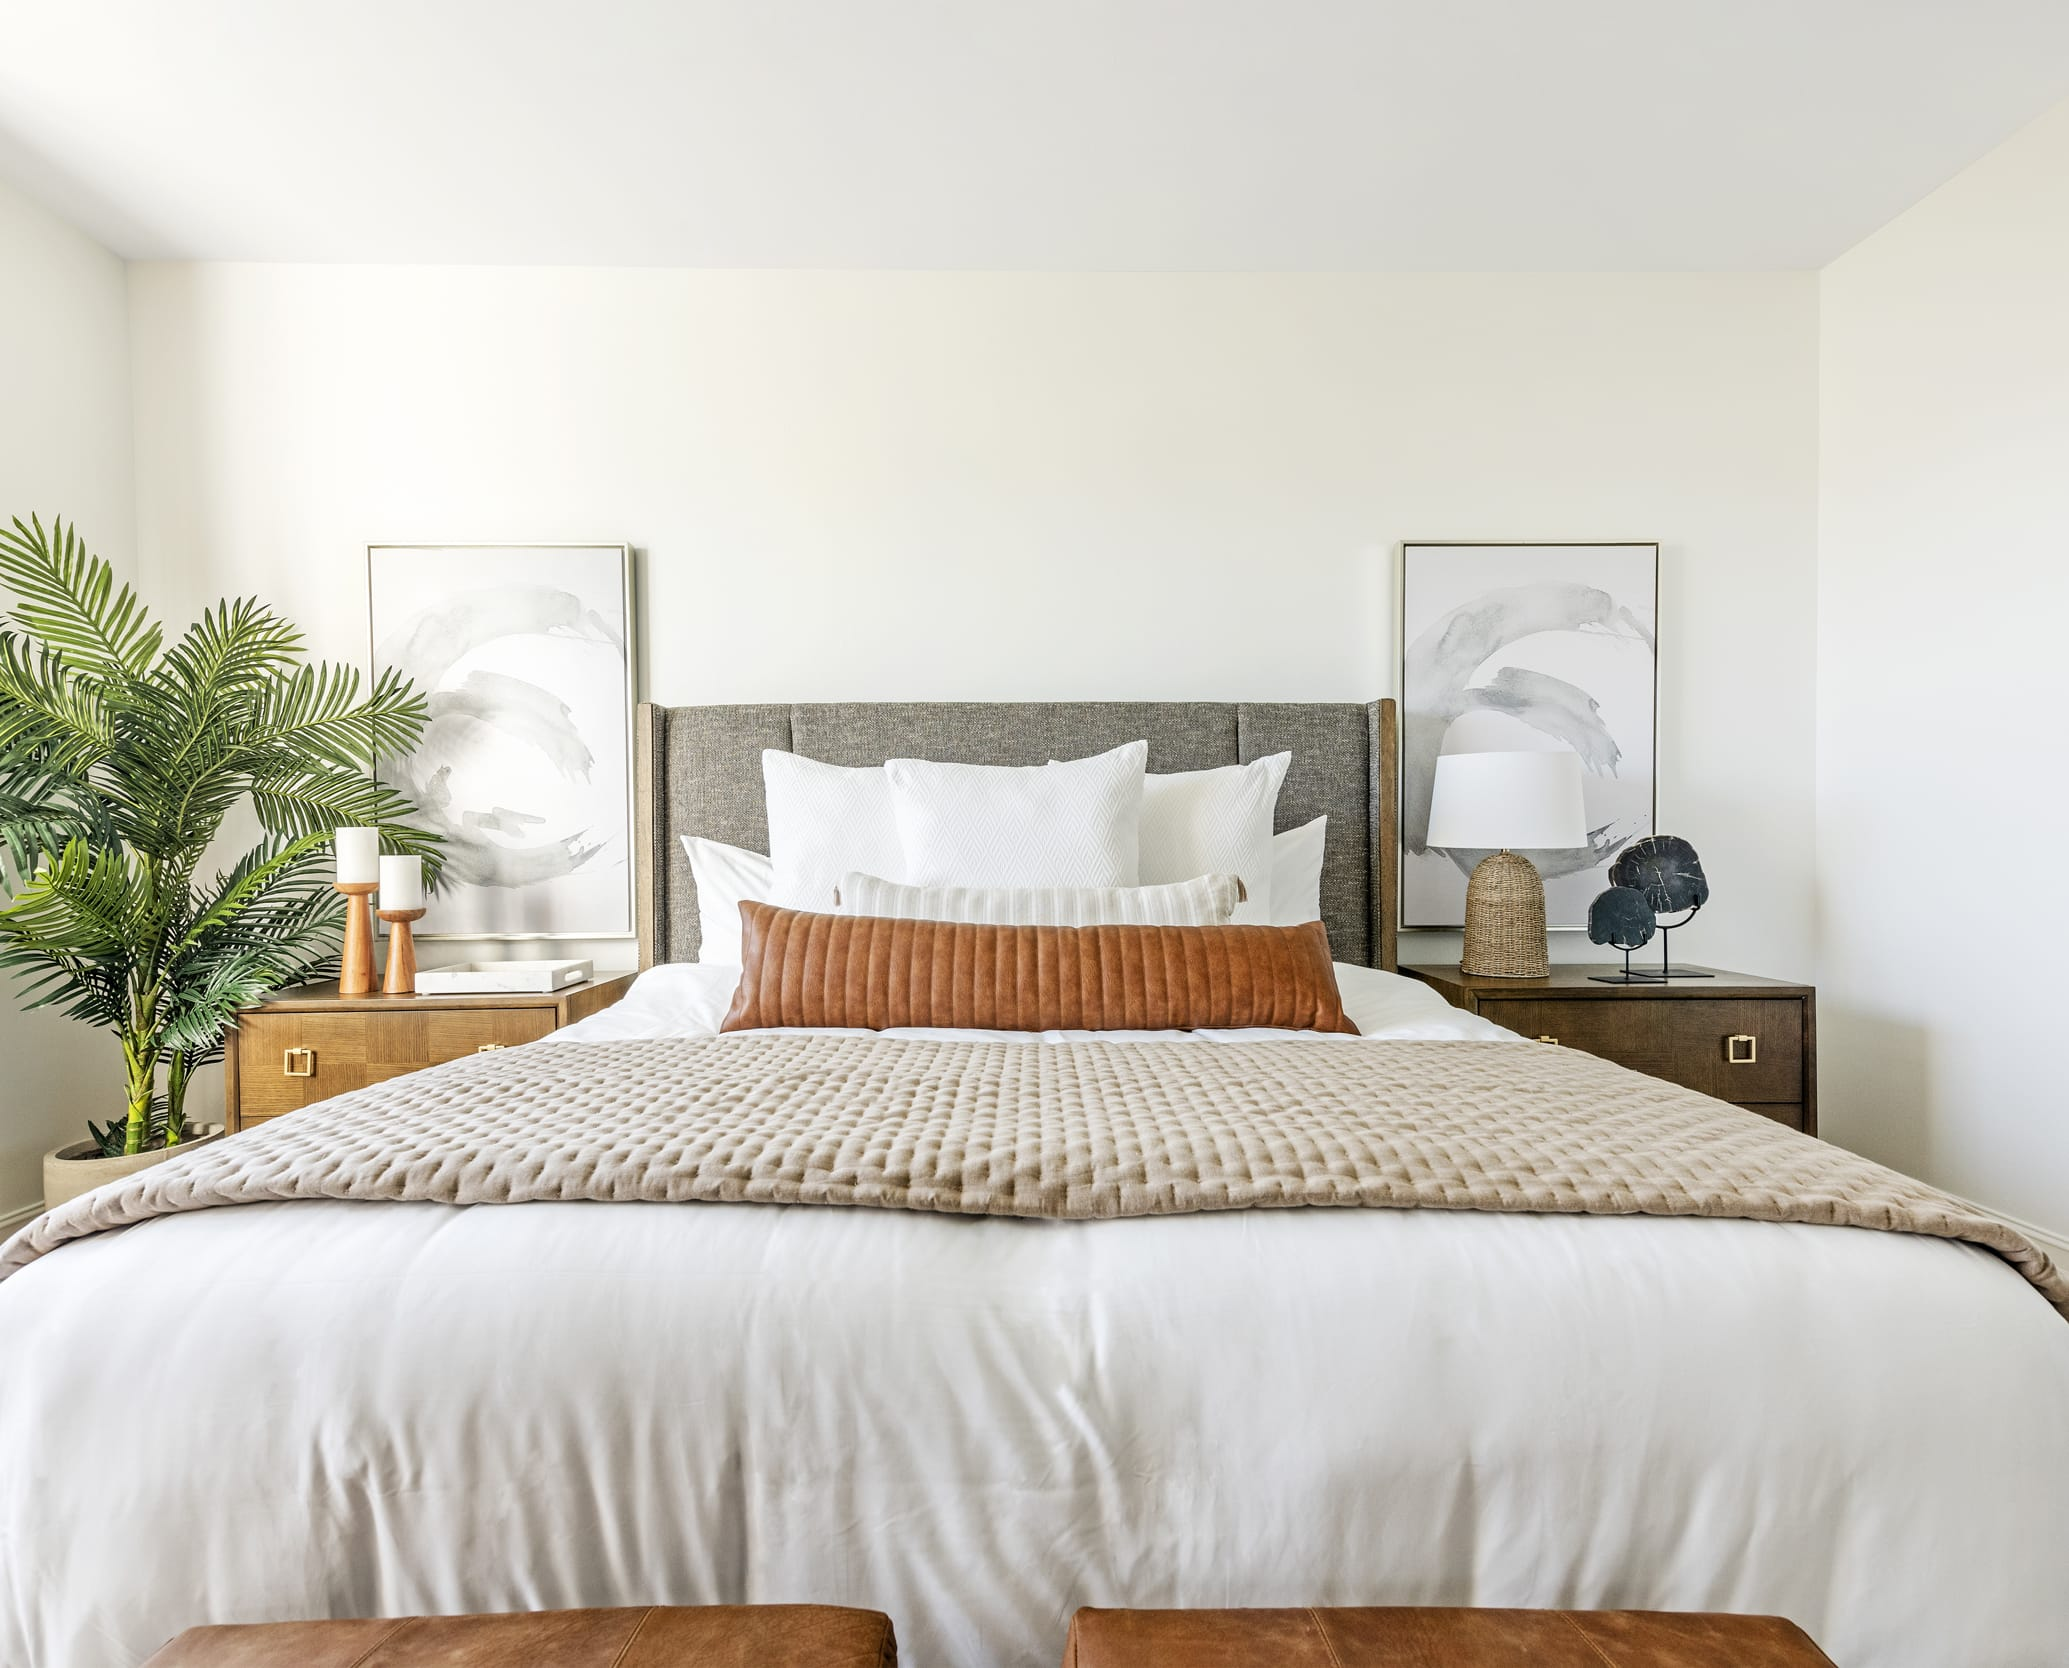 Bedroom Nutral Organic Colors Leather Stalls White Walls Head On